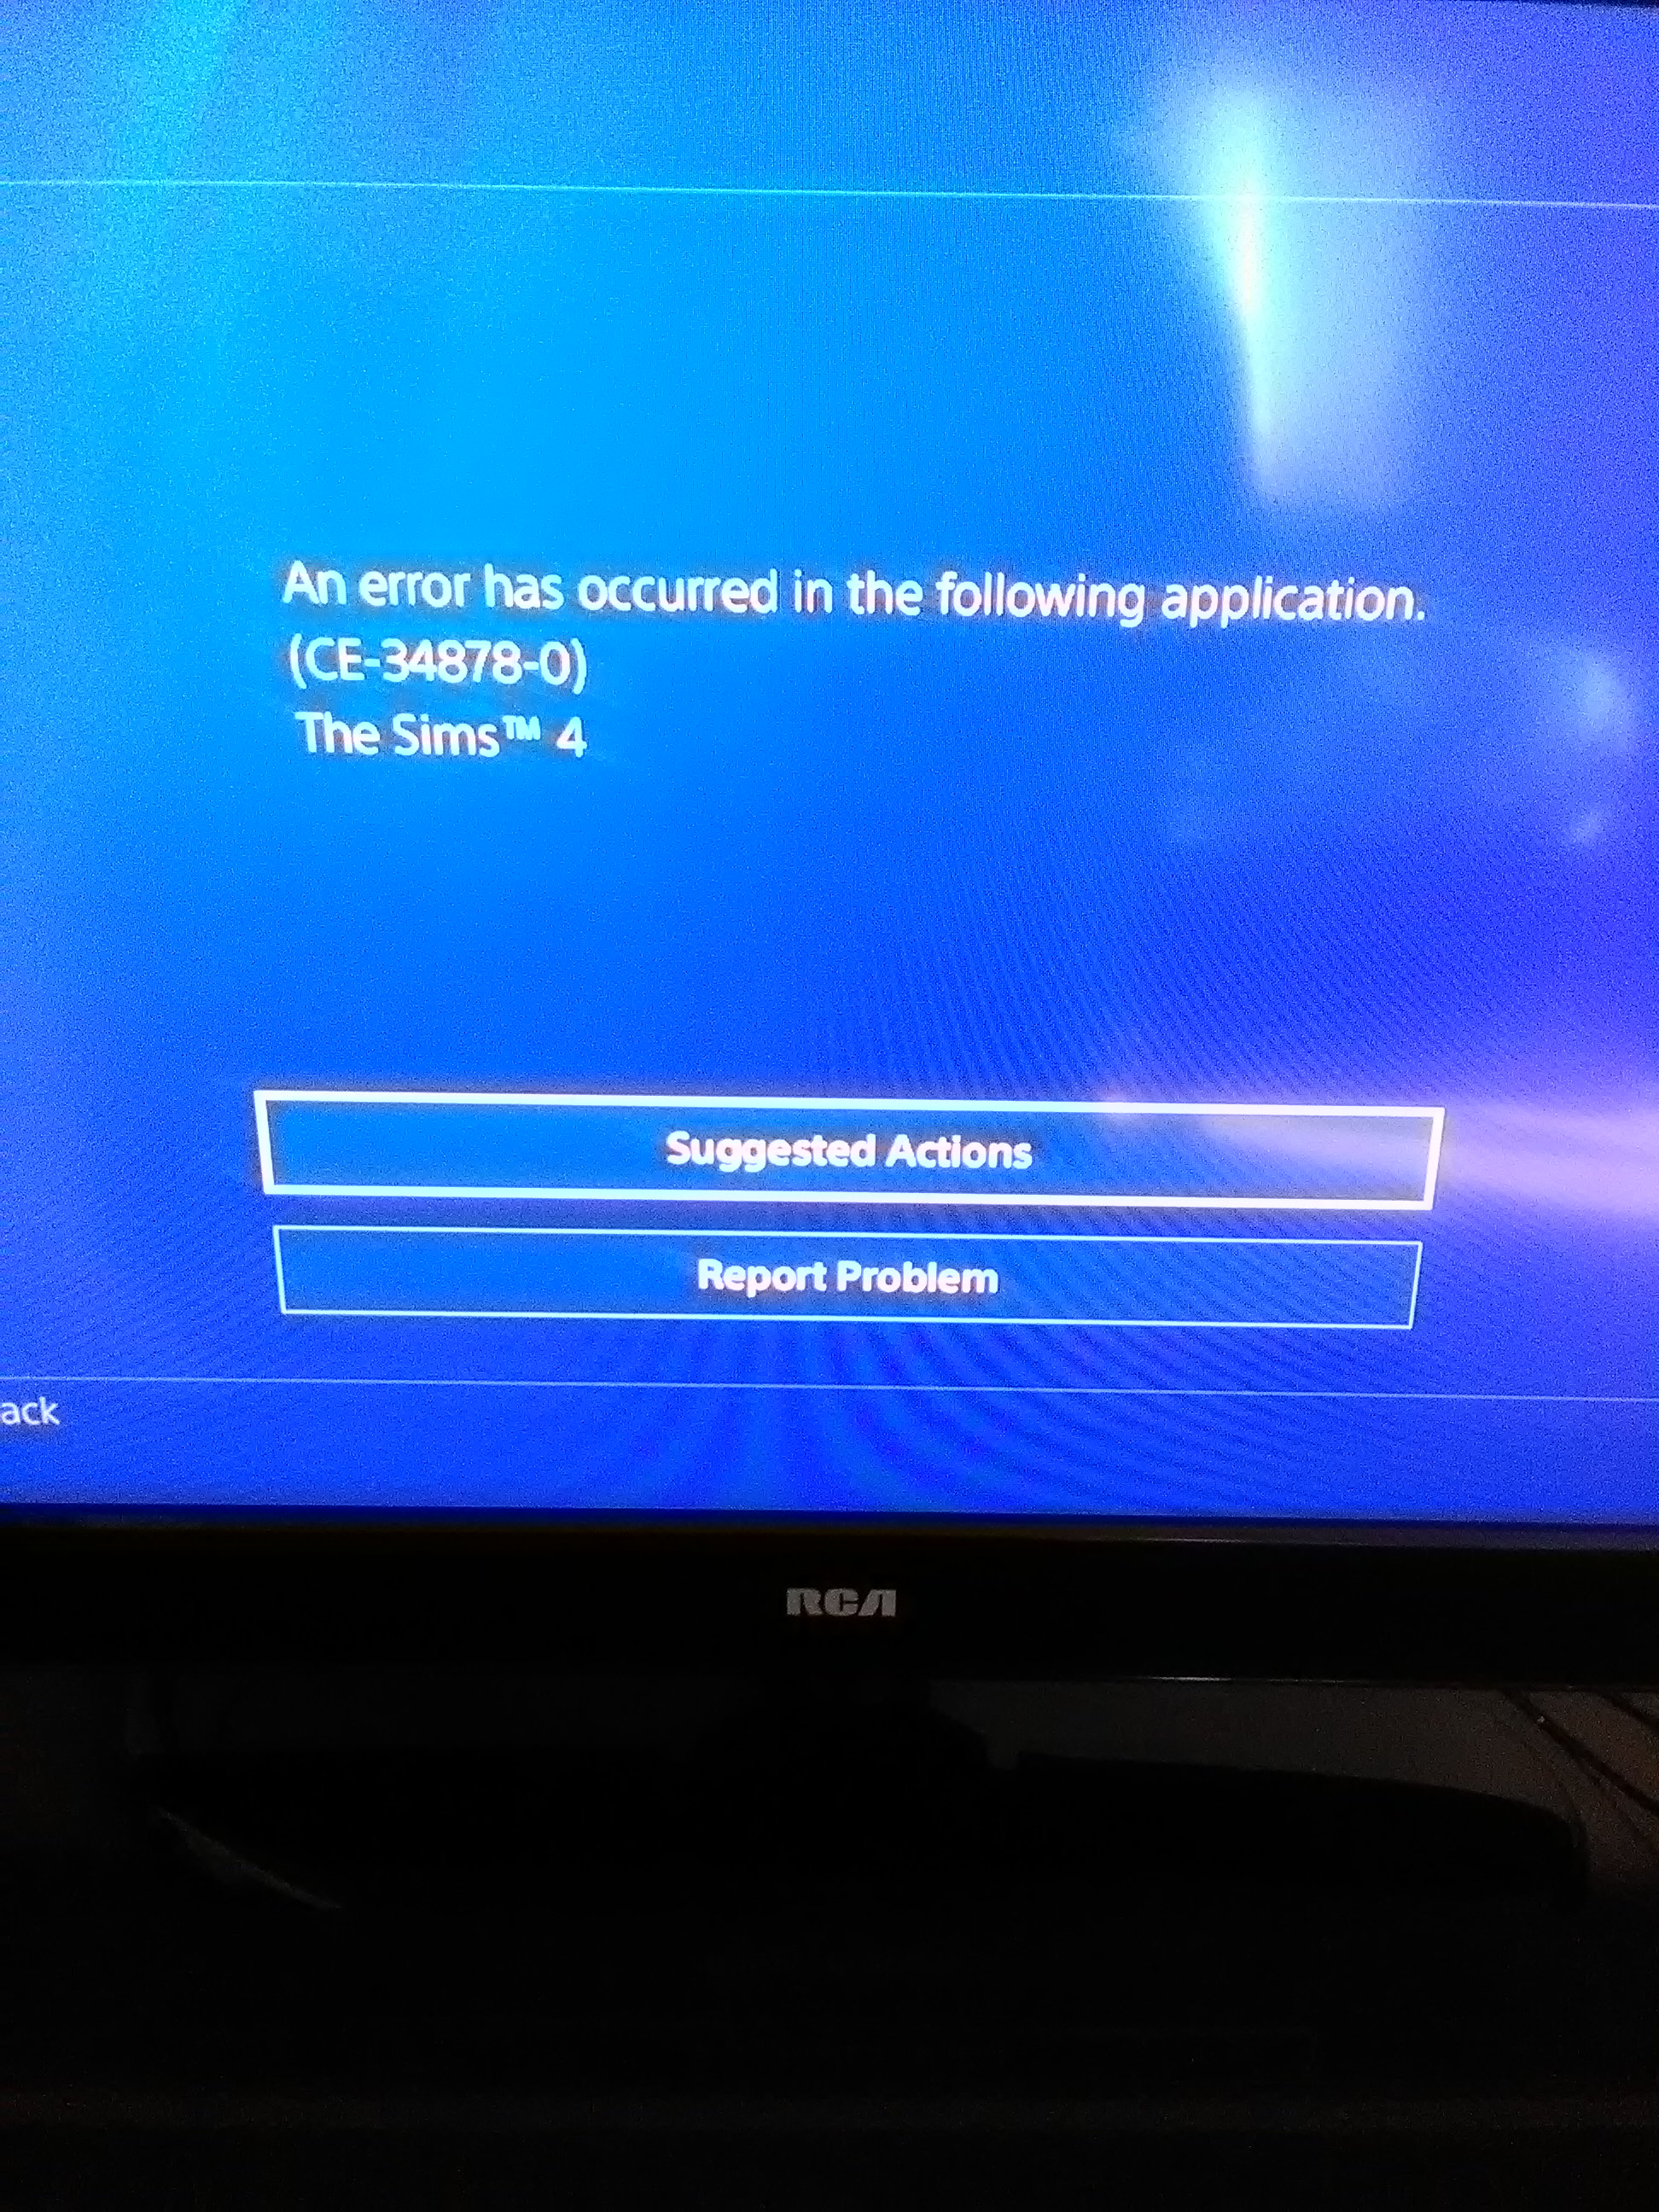 Sims 4 Error CE-34878-0 On PS4? - Answer HQ